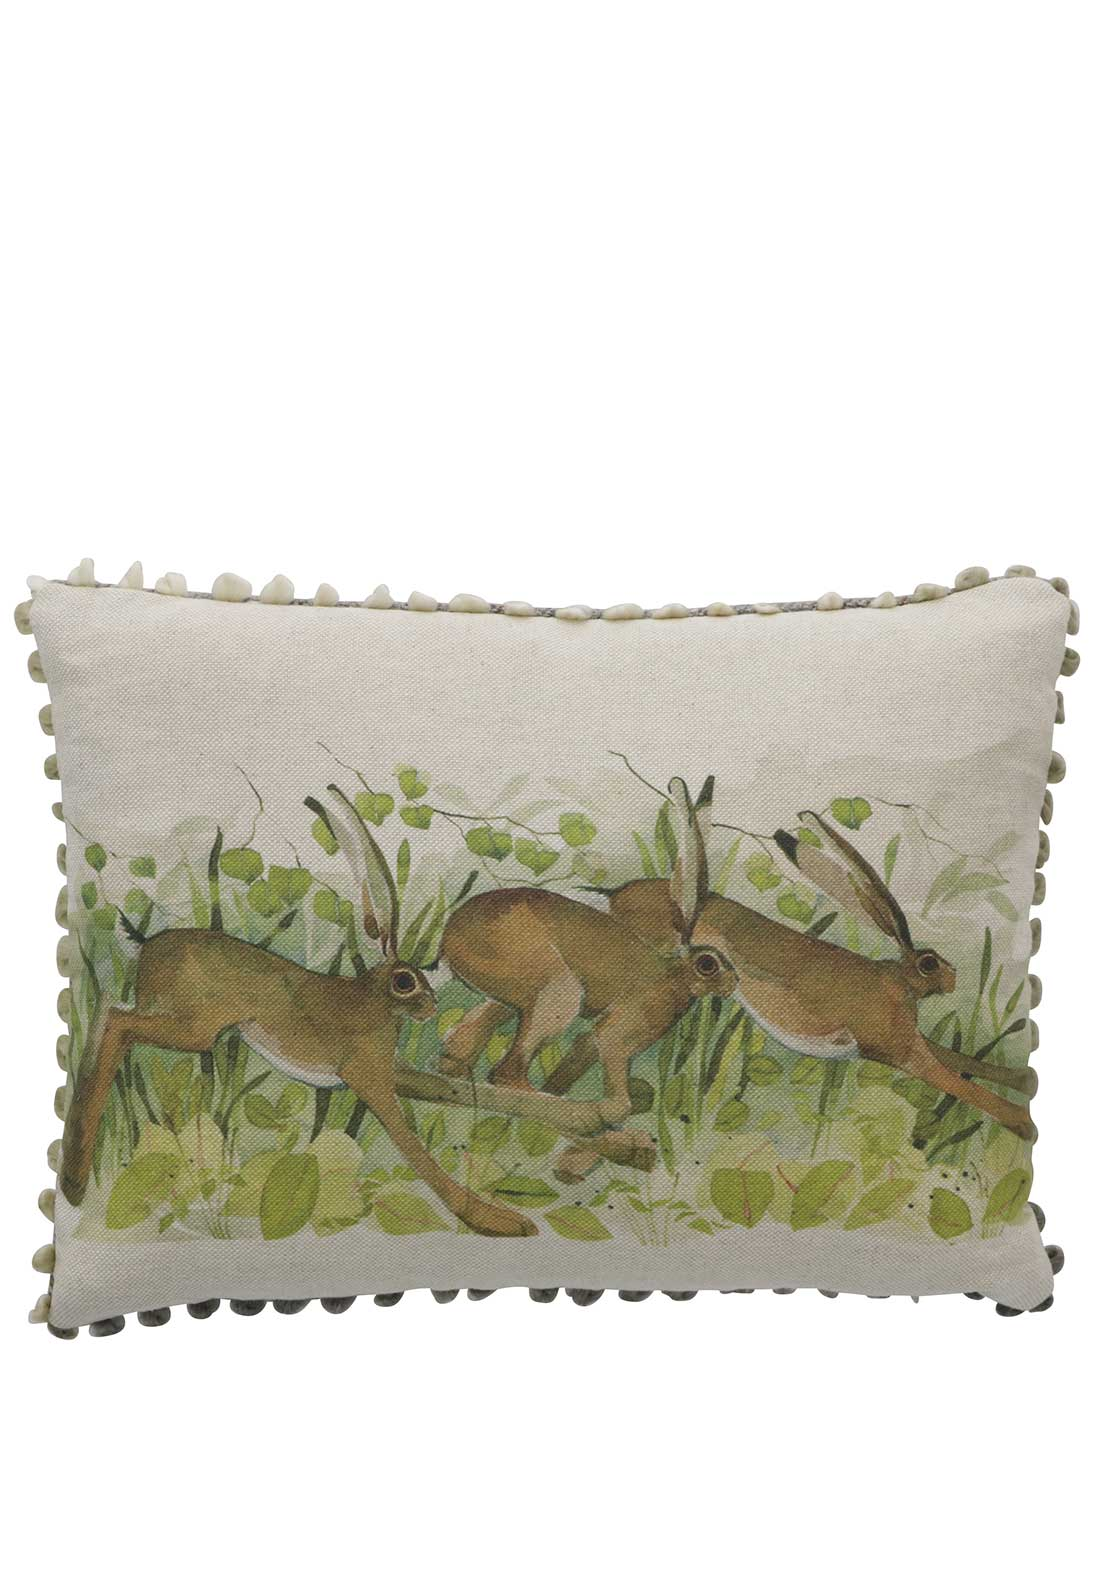 Voyage Maison Leaping Hares Cushion, Multi